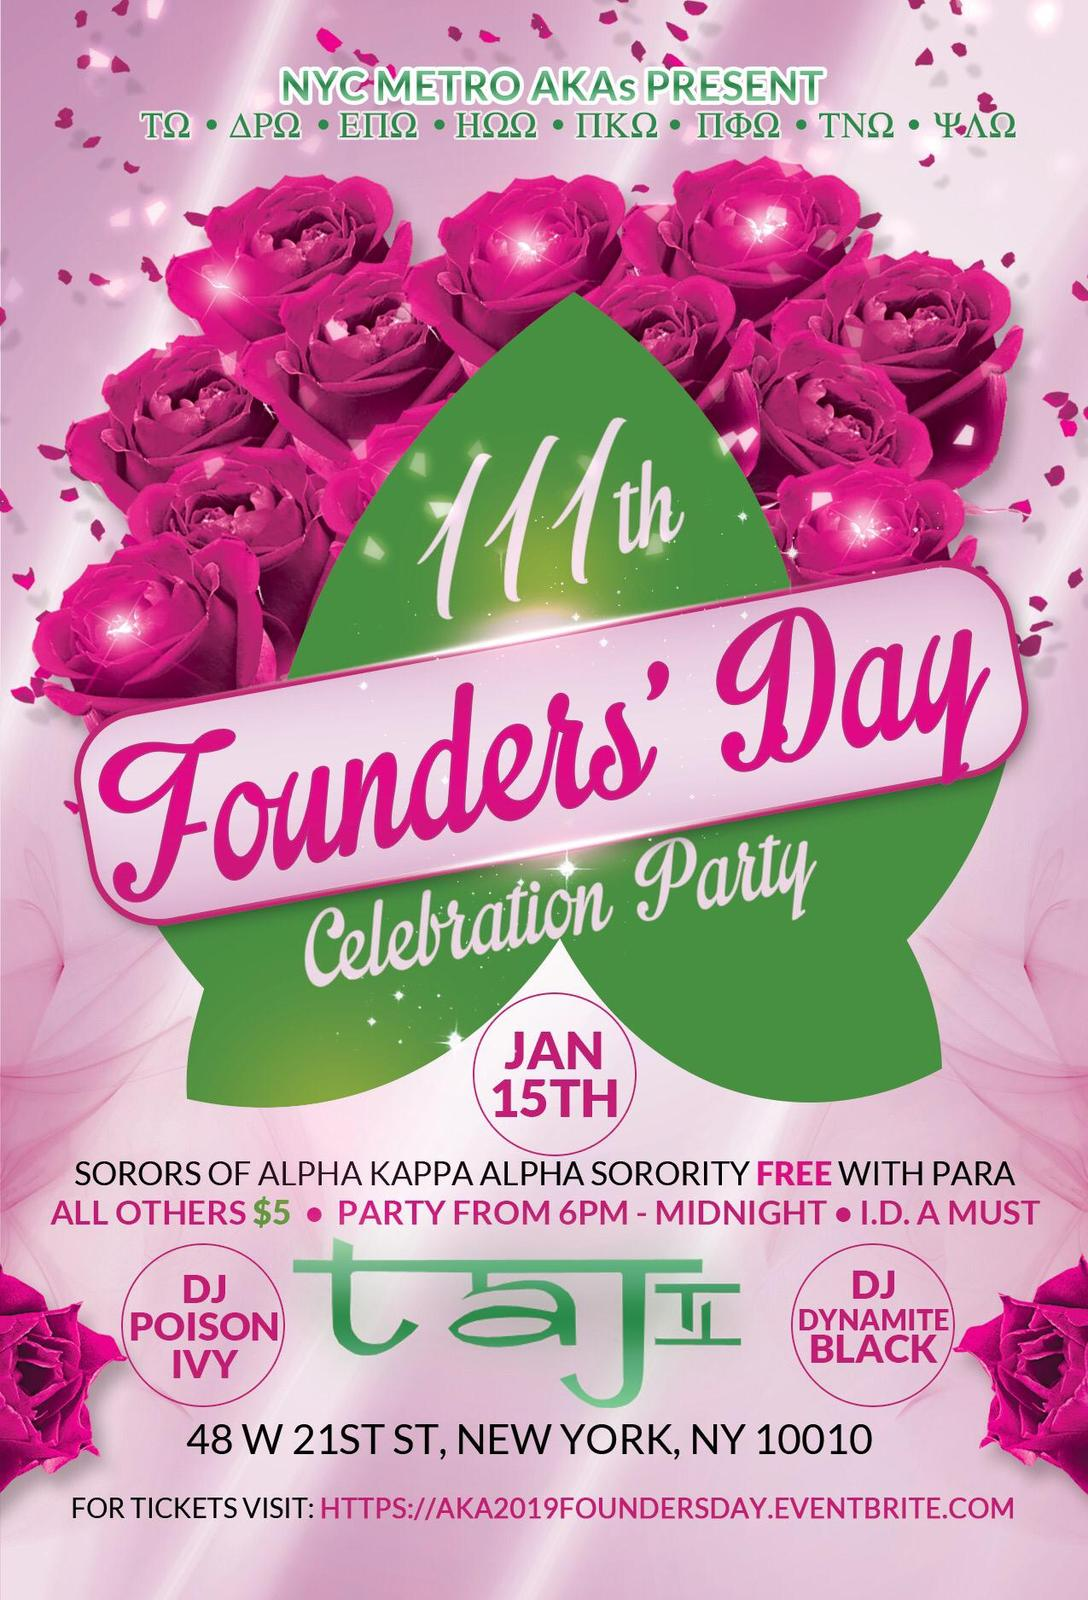 111th Founders Day flyer